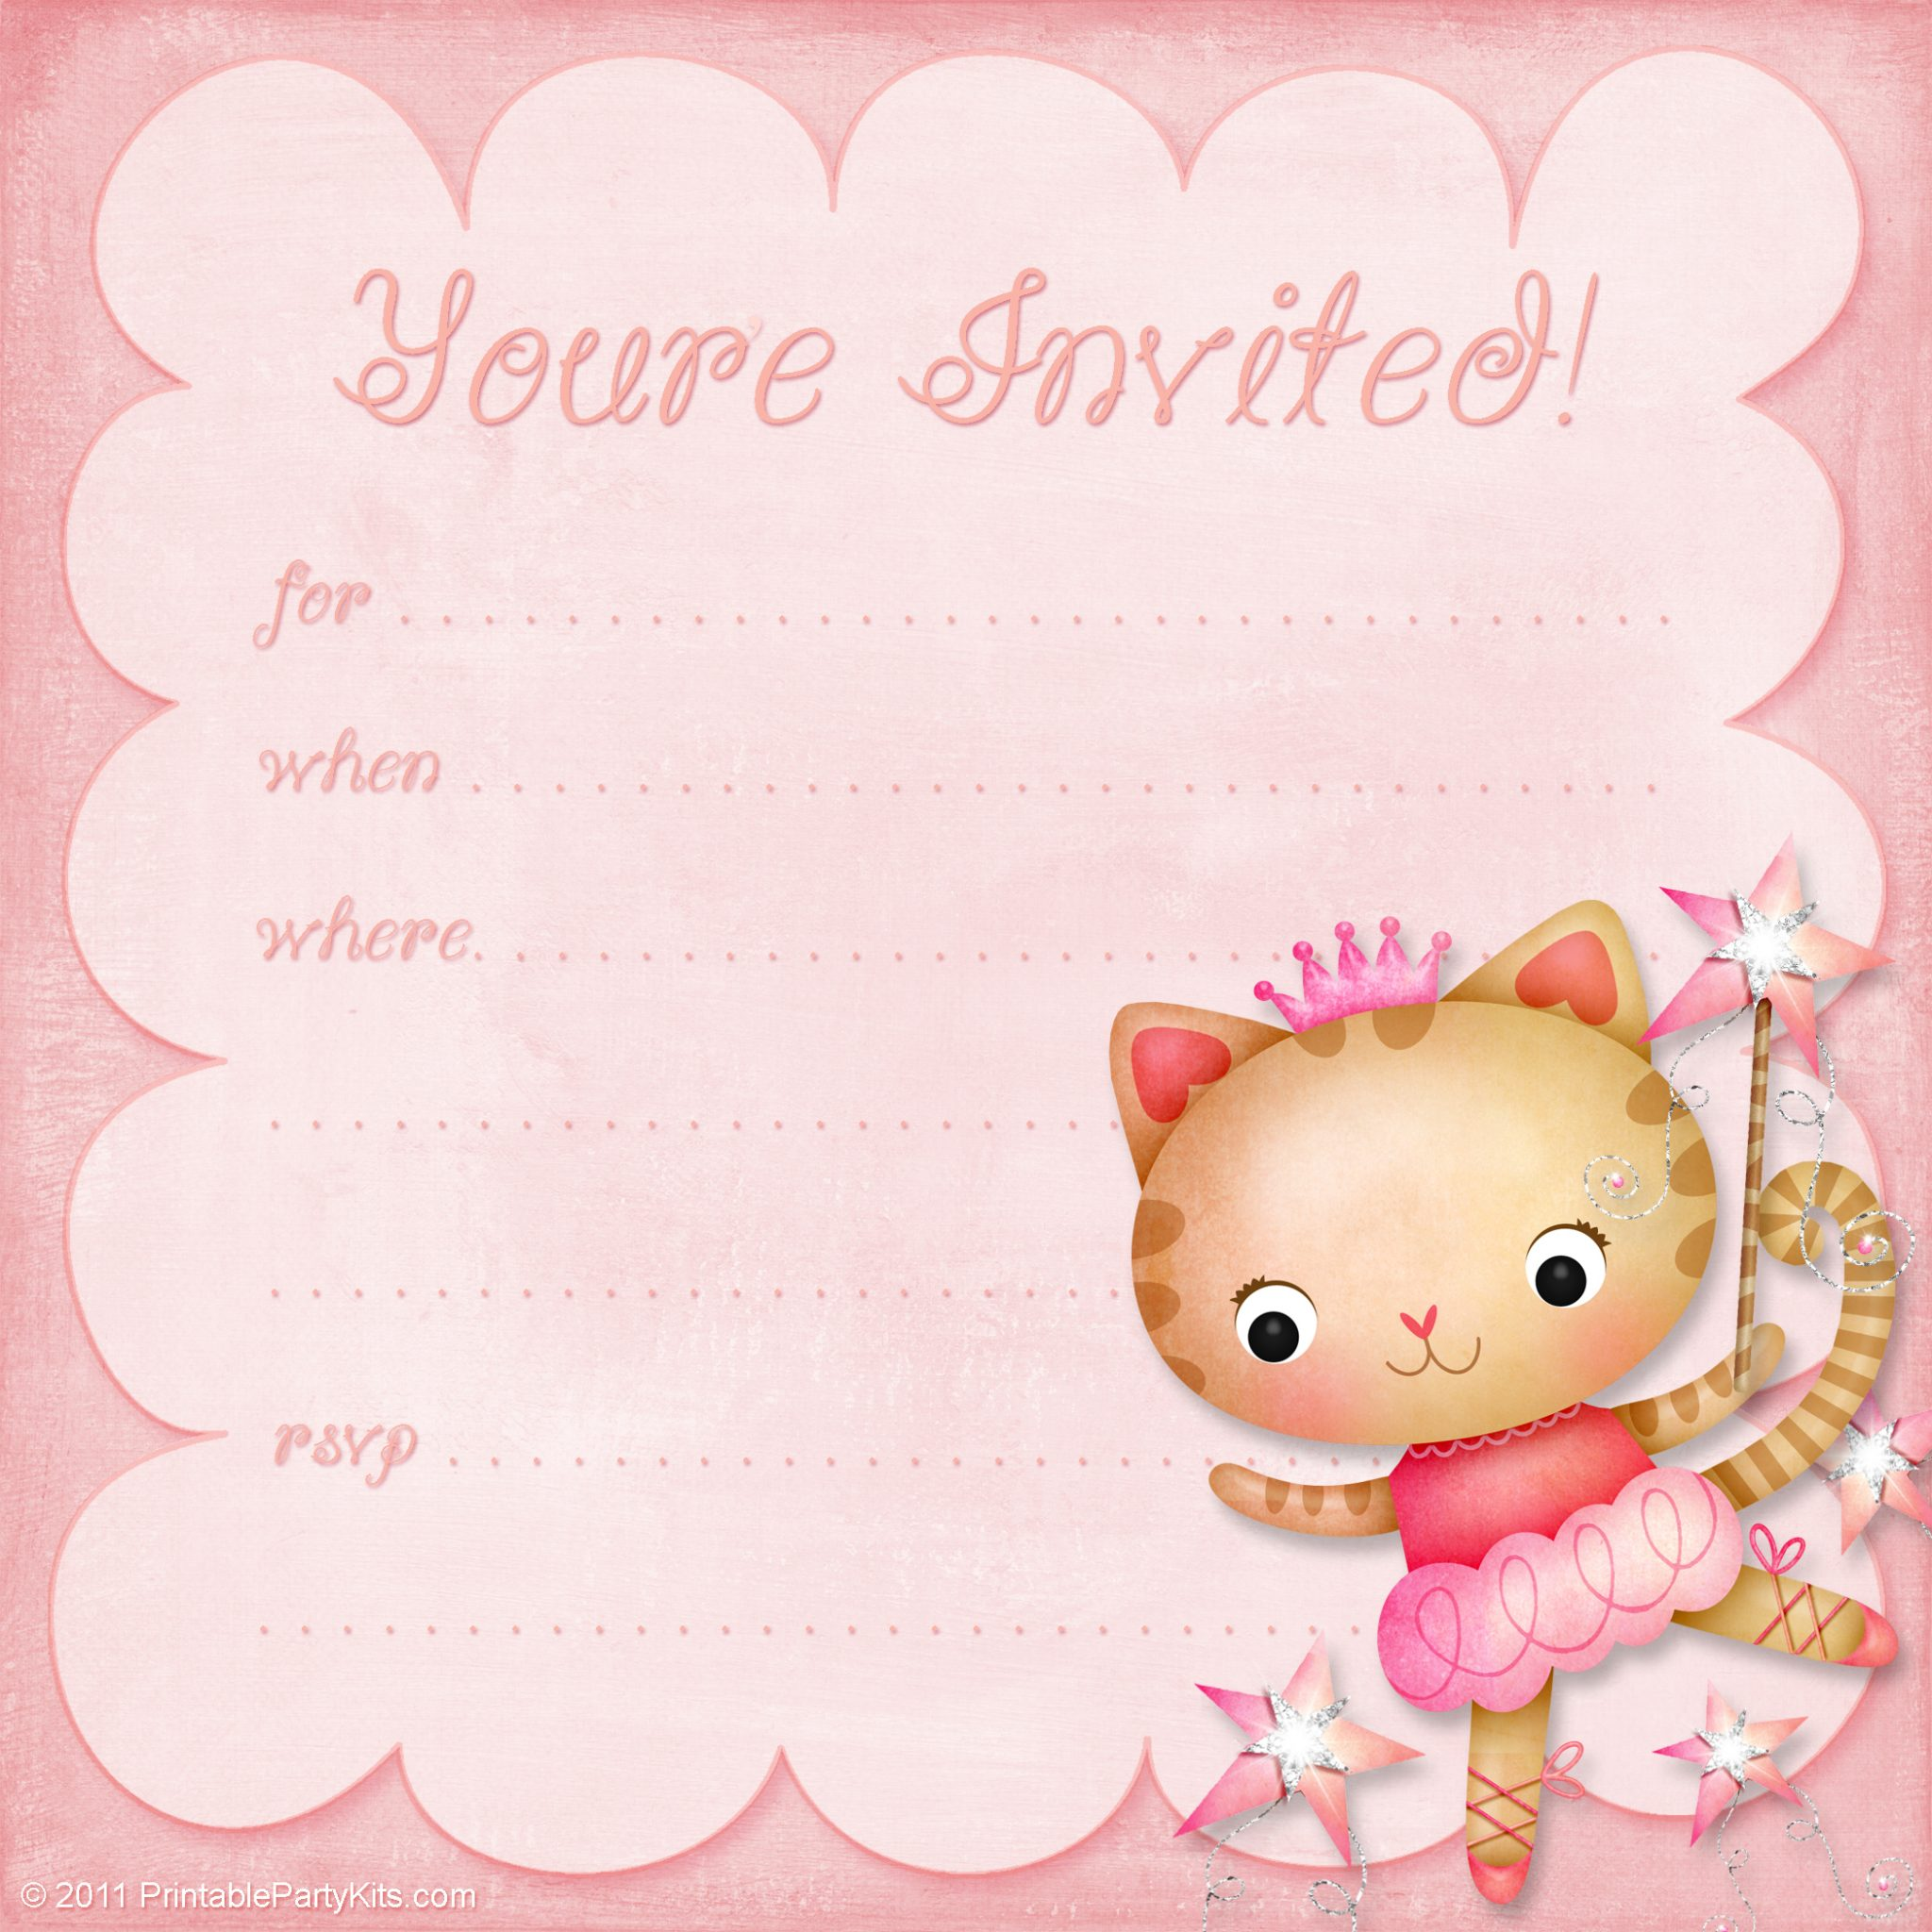 File Name : girls-birthday-invitation.jpg Resolution : 2100 x 2100 ...